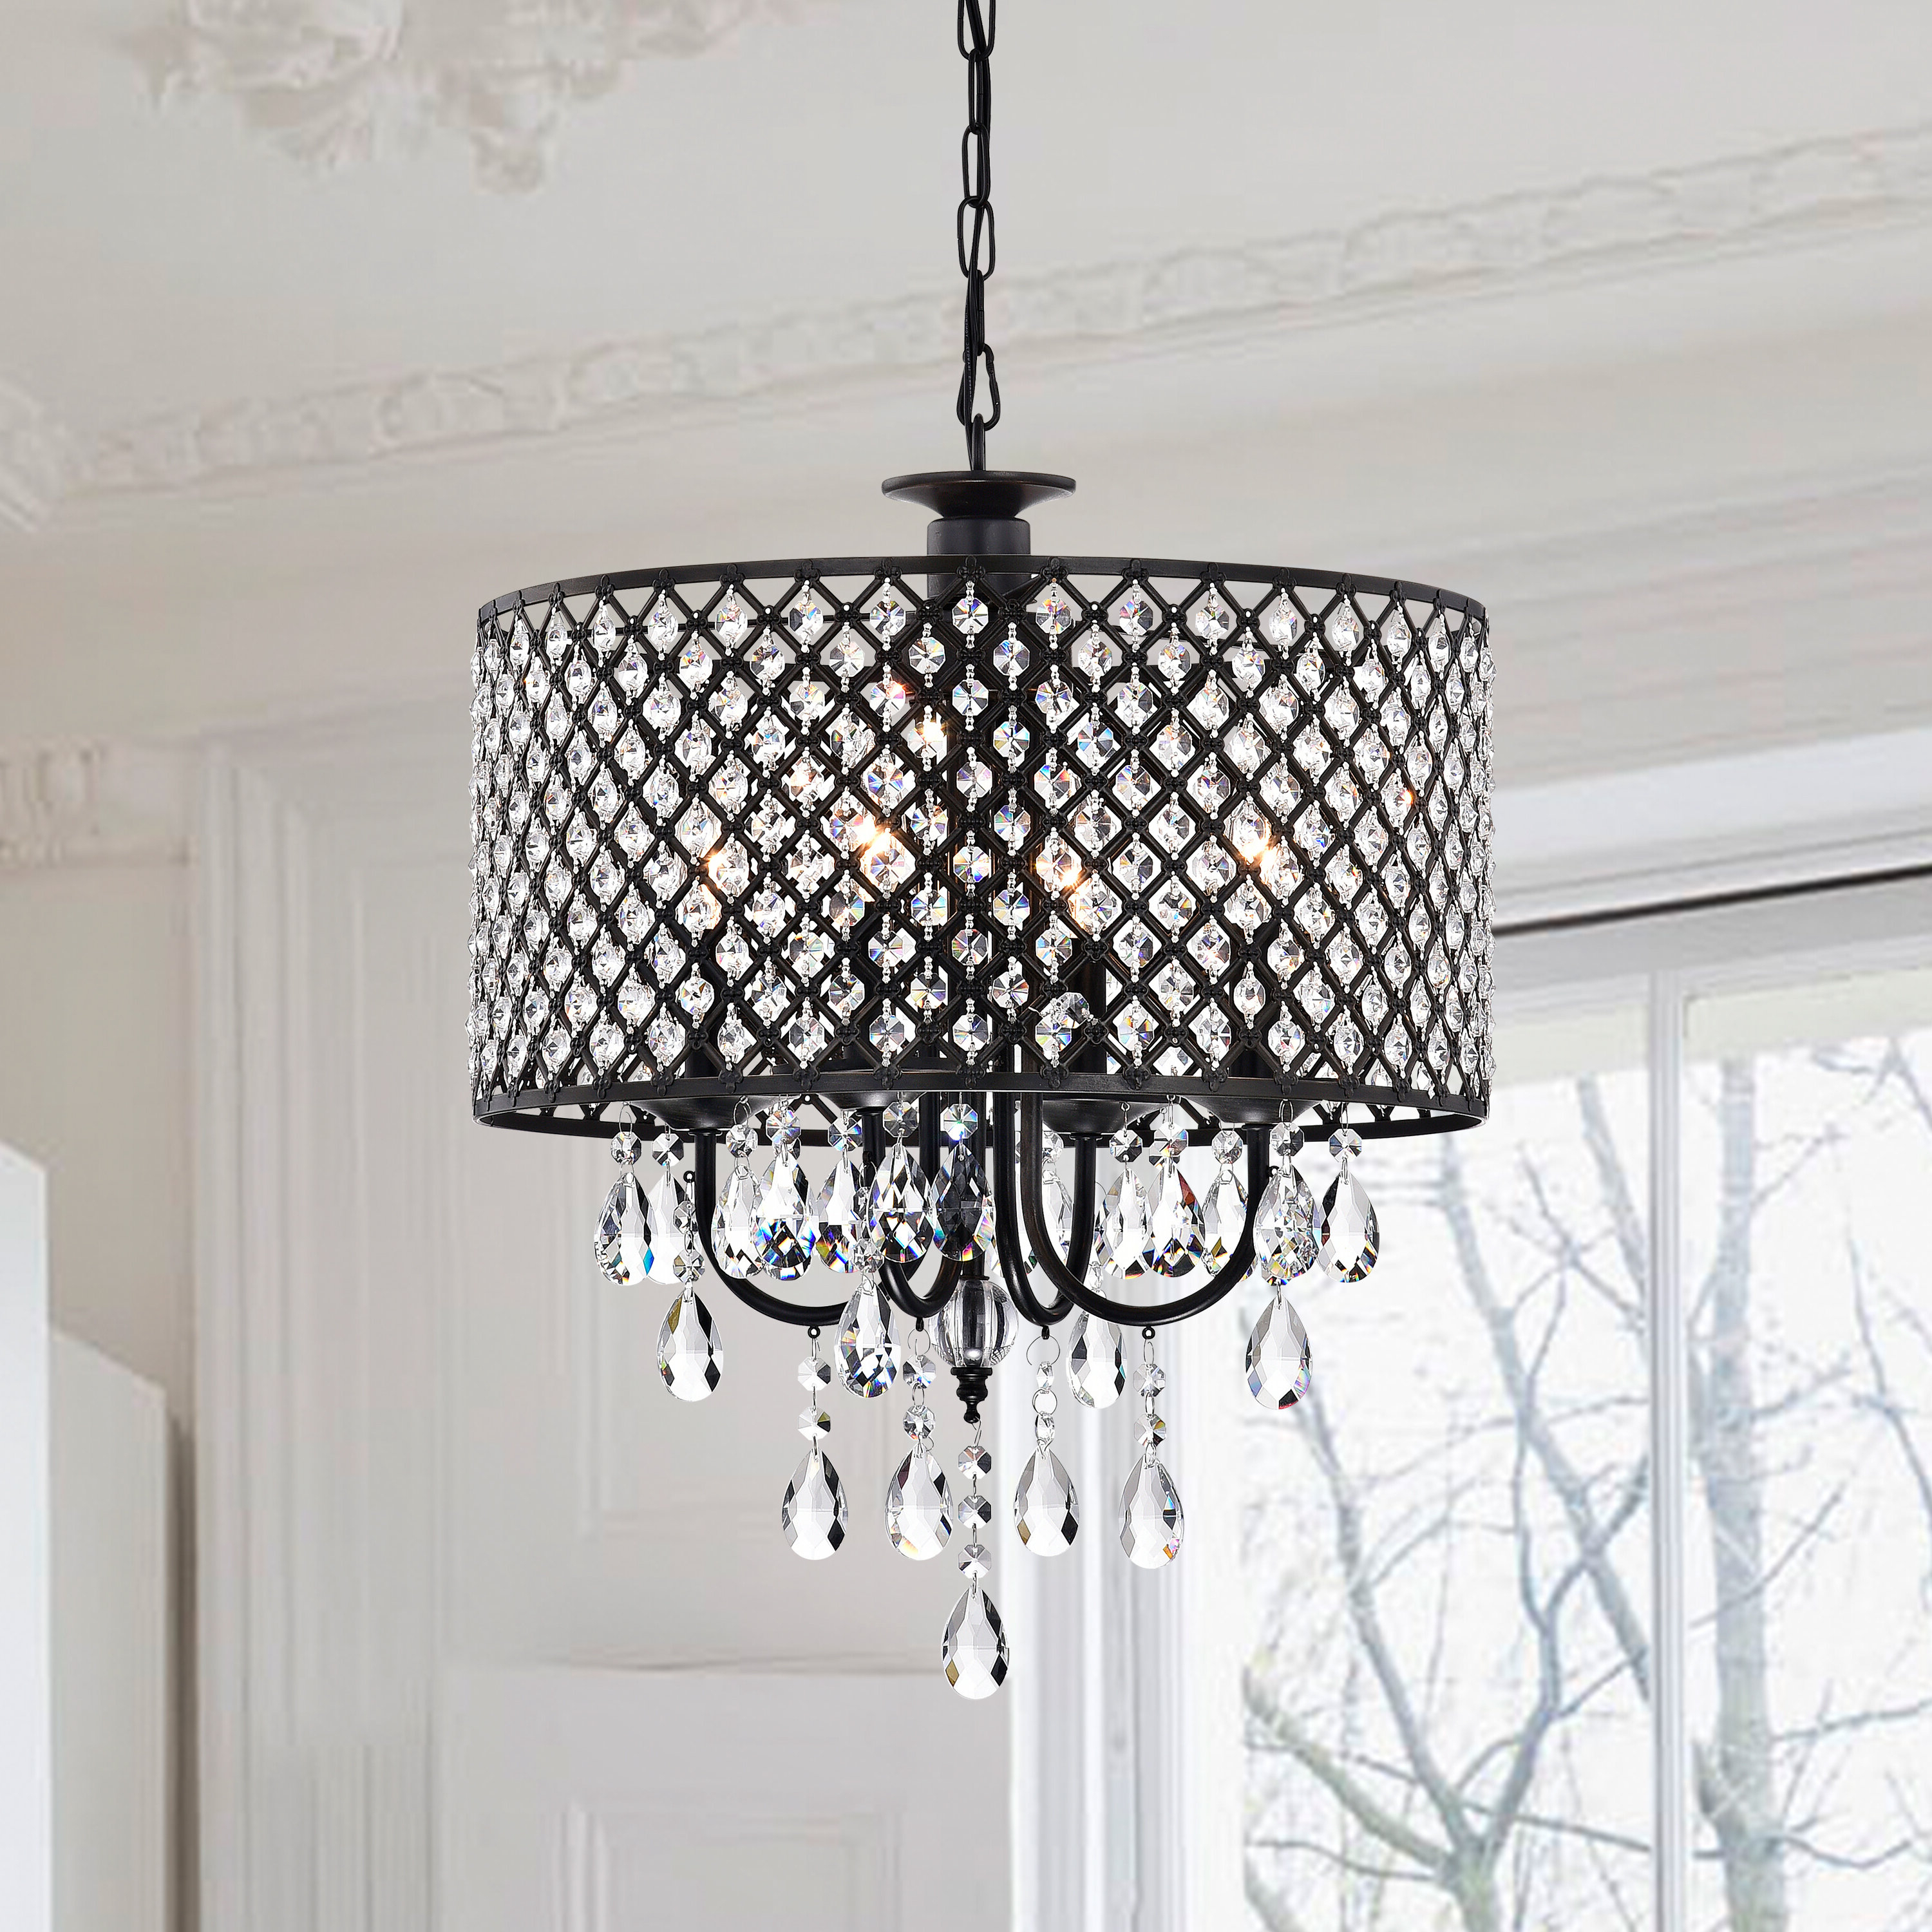 Most Popular Gisselle 4 Light Drum Chandelier Intended For Jill 4 Light Drum Chandeliers (View 2 of 20)